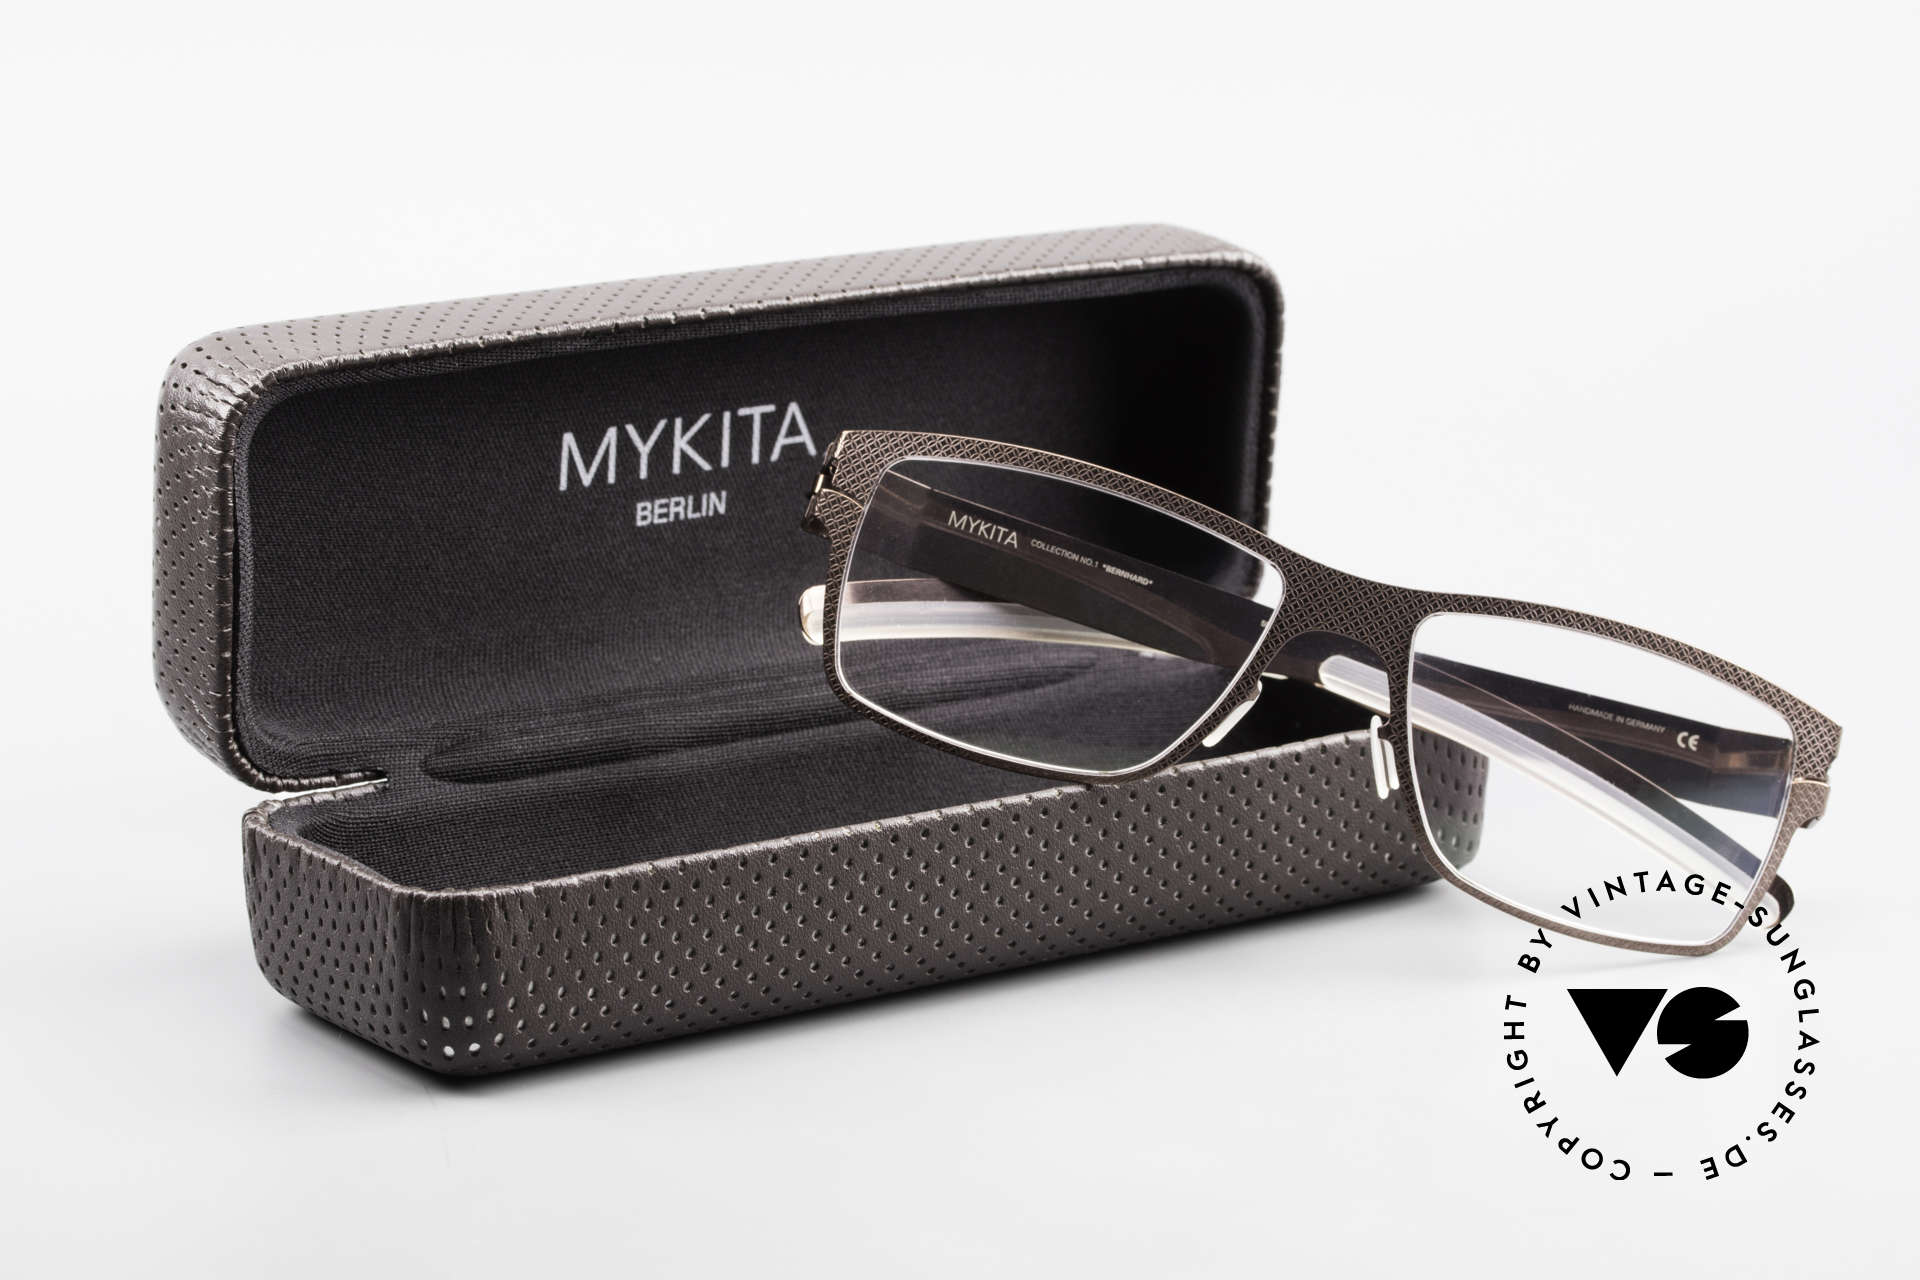 Mykita Bernhard Mykita Vintage Eyeglasses 2009, worn by many celebs (rare & in high demand, meanwhile), Made for Men